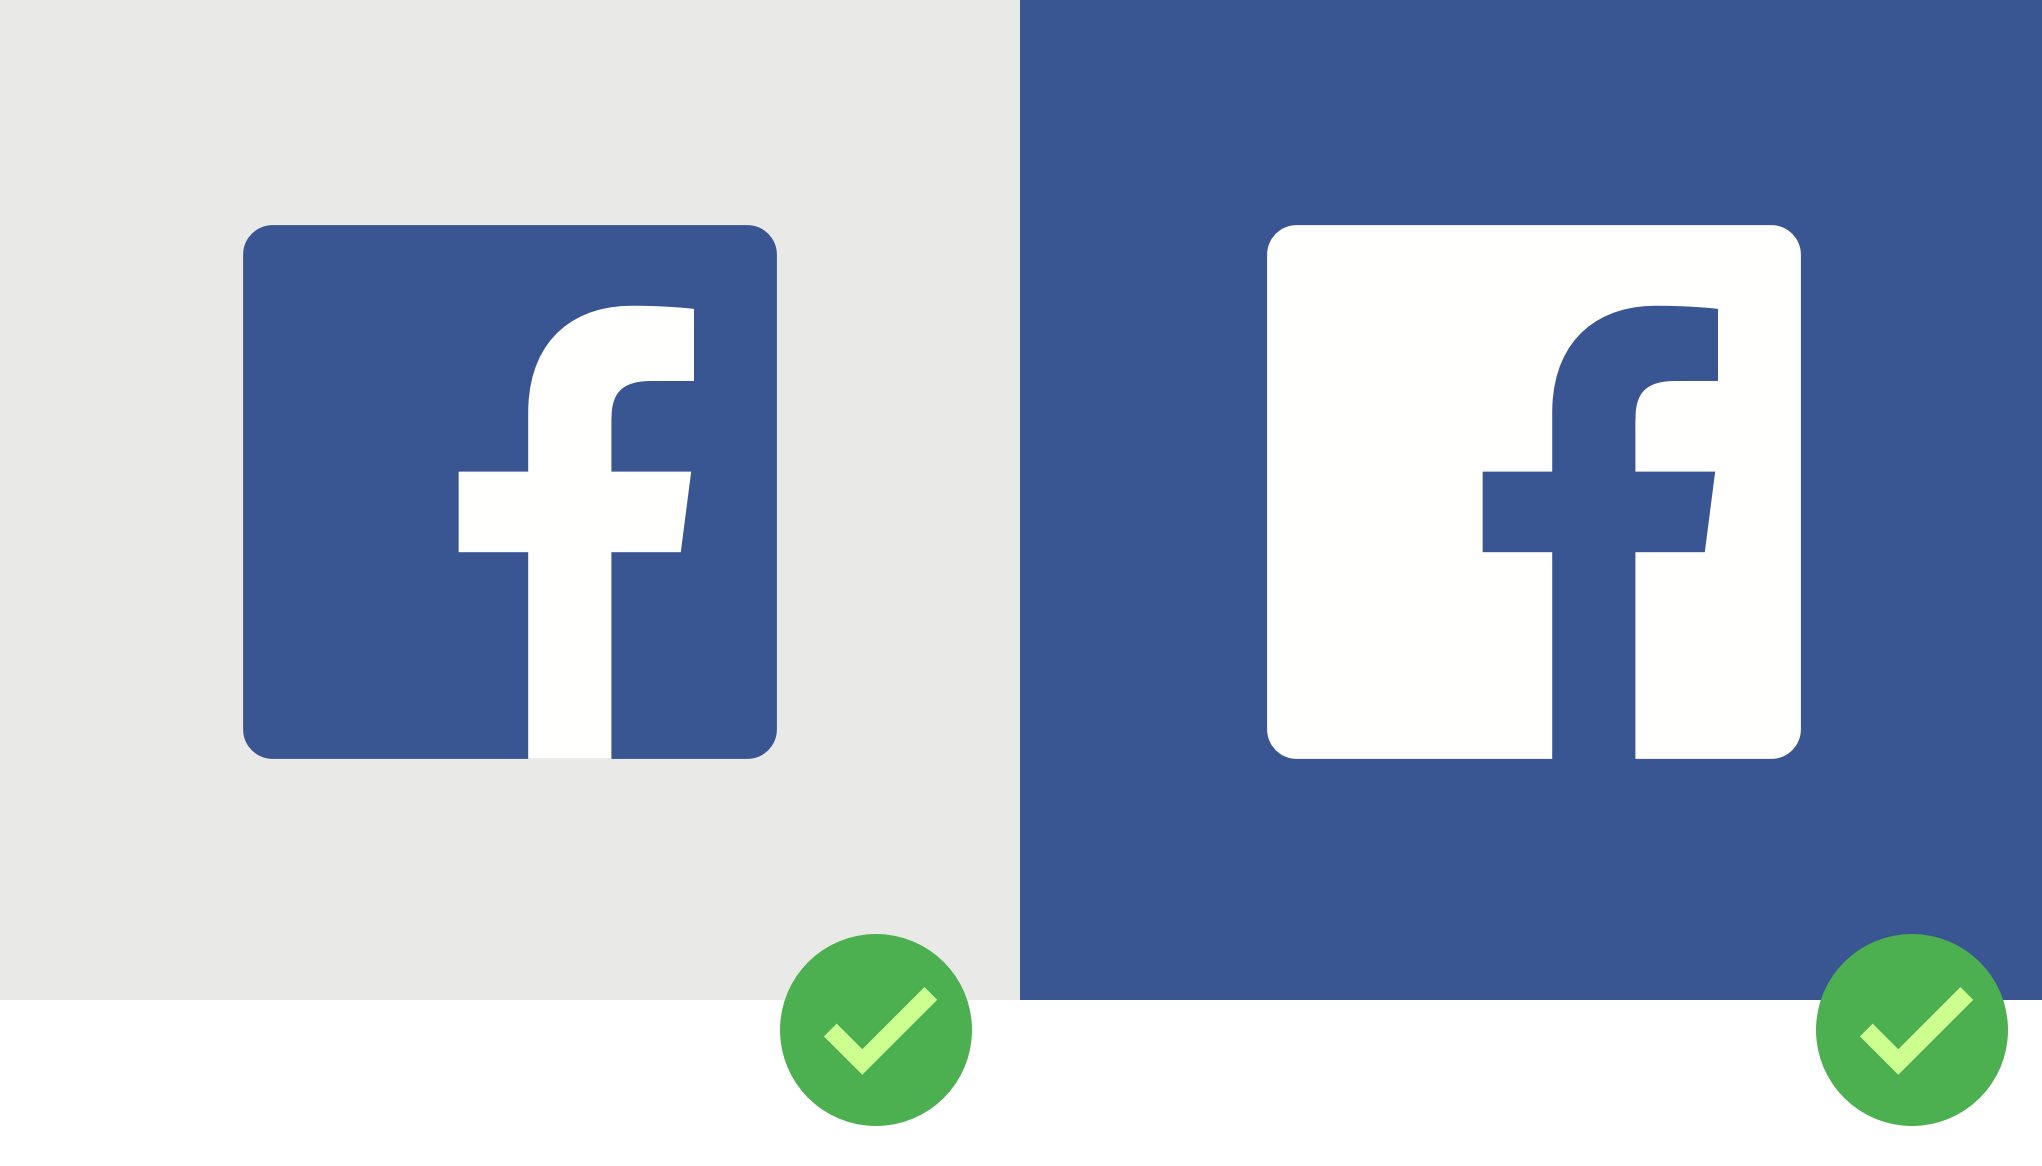 Facebook clipart small size. Icon free download png